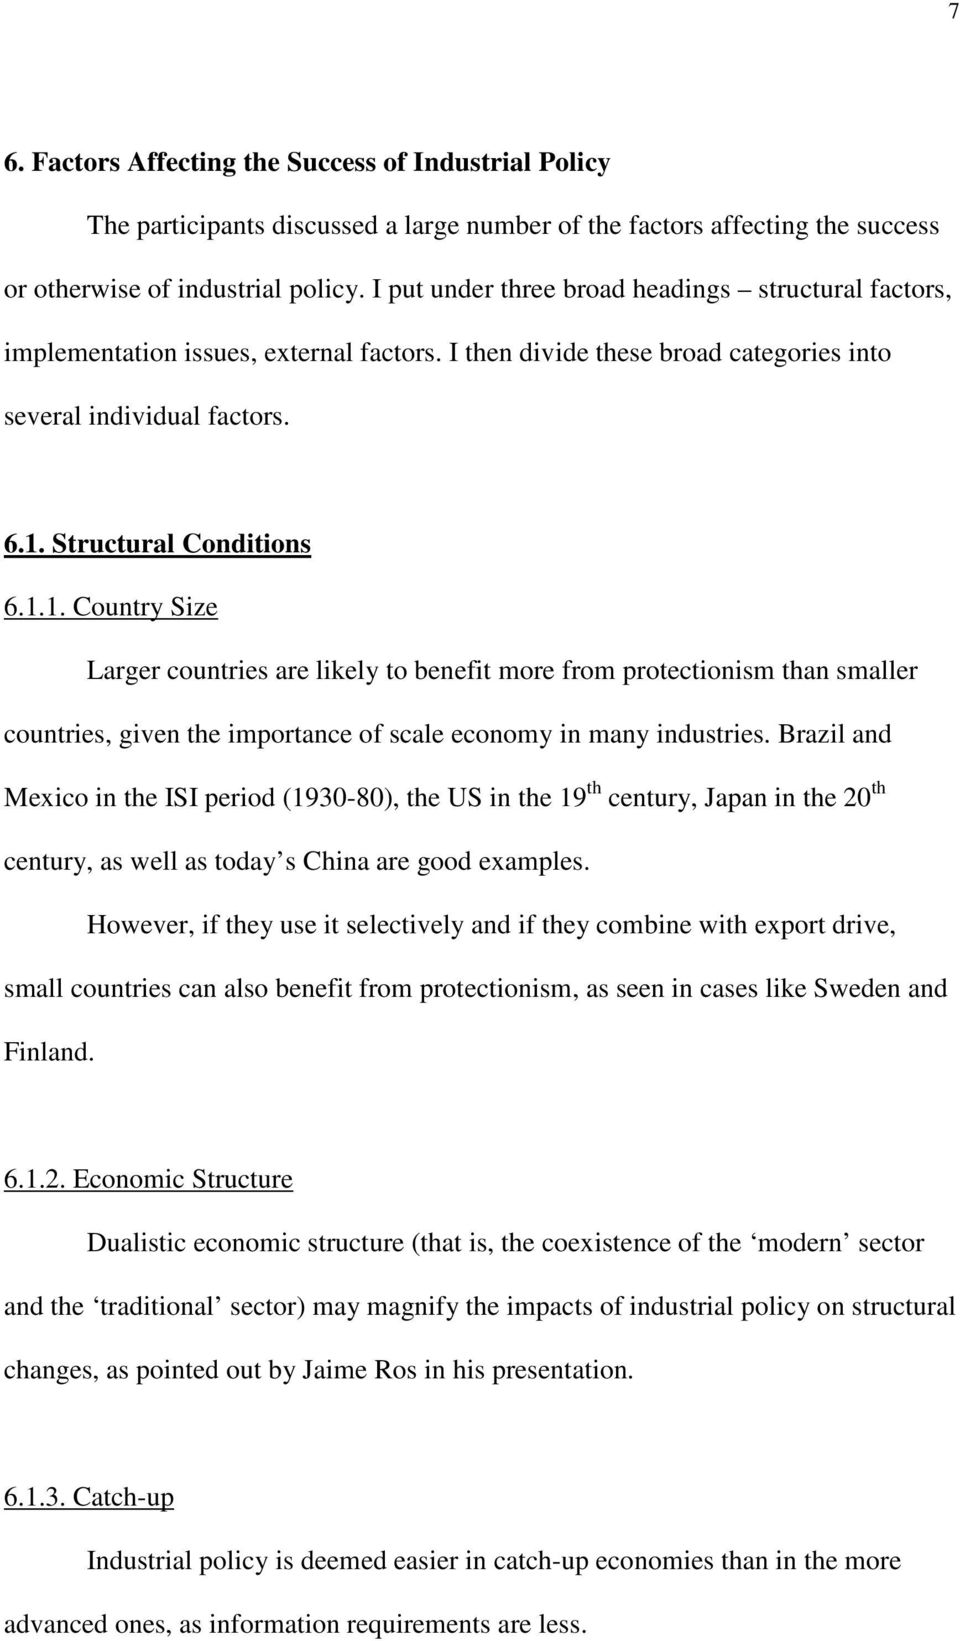 Structural Conditions 6.1.1. Country Size Larger countries are likely to benefit more from protectionism than smaller countries, given the importance of scale economy in many industries.